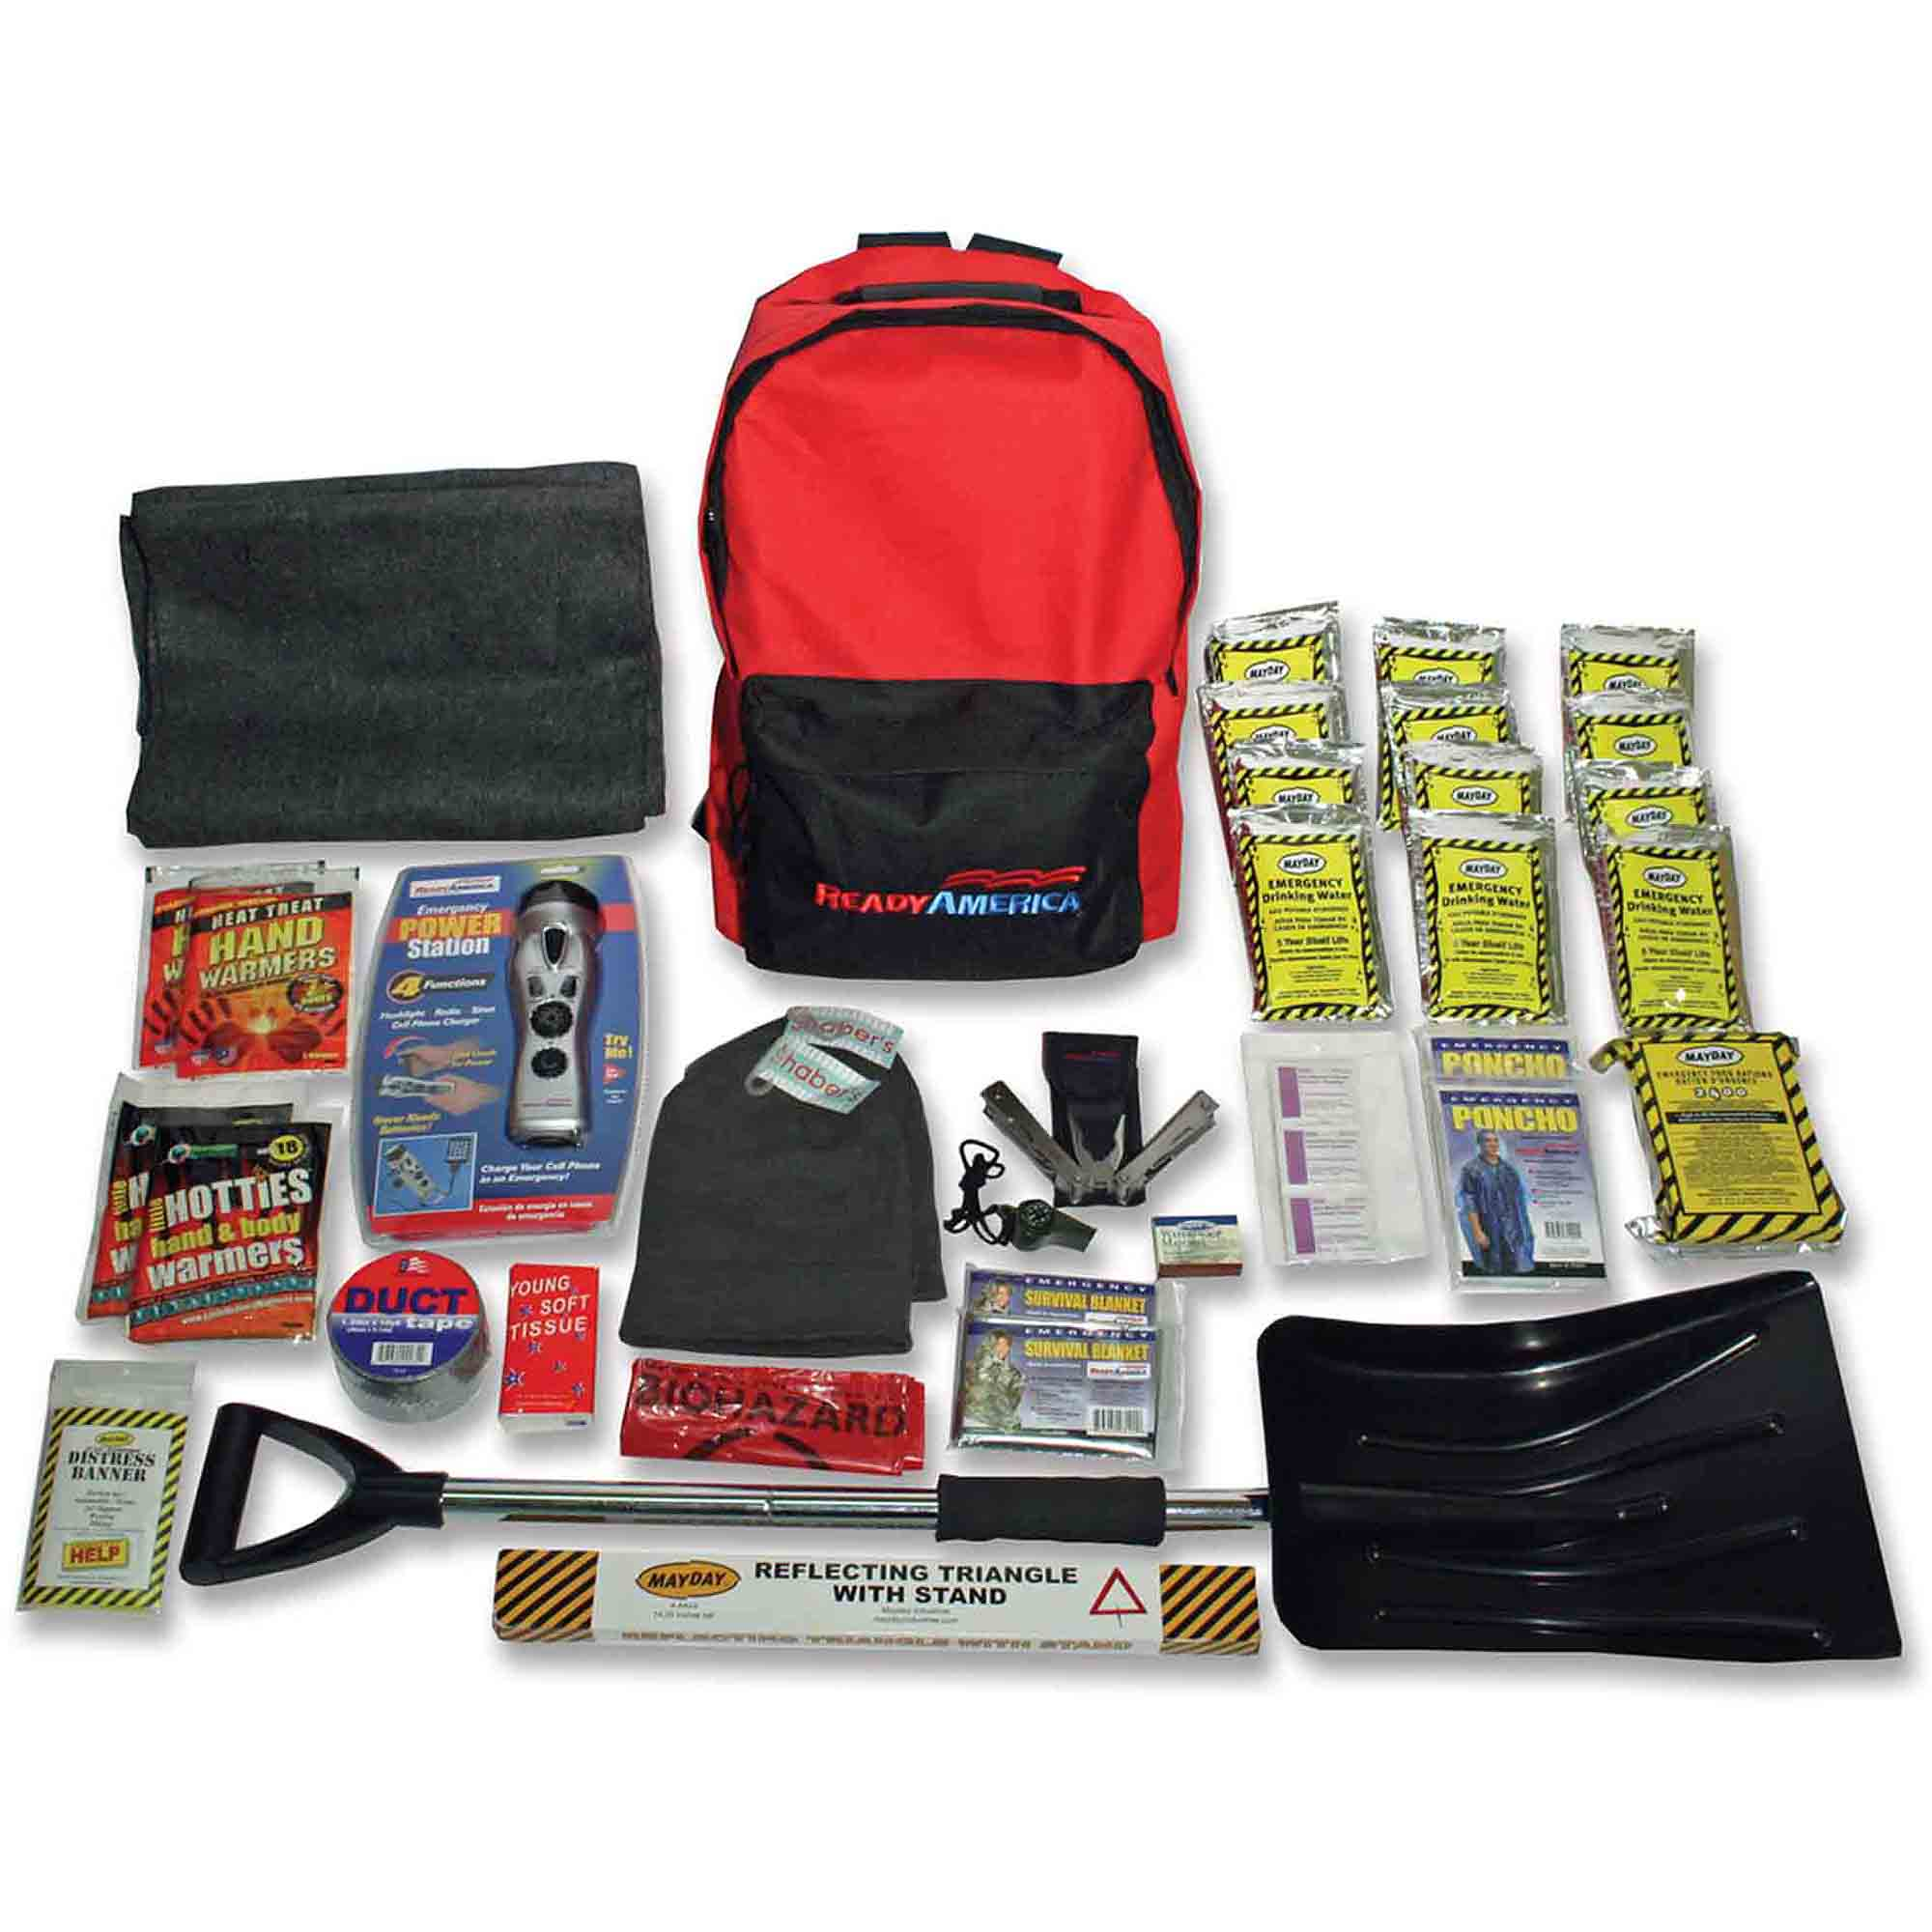 Ready America Emergency 2-Person Cold Weather Survival Kit